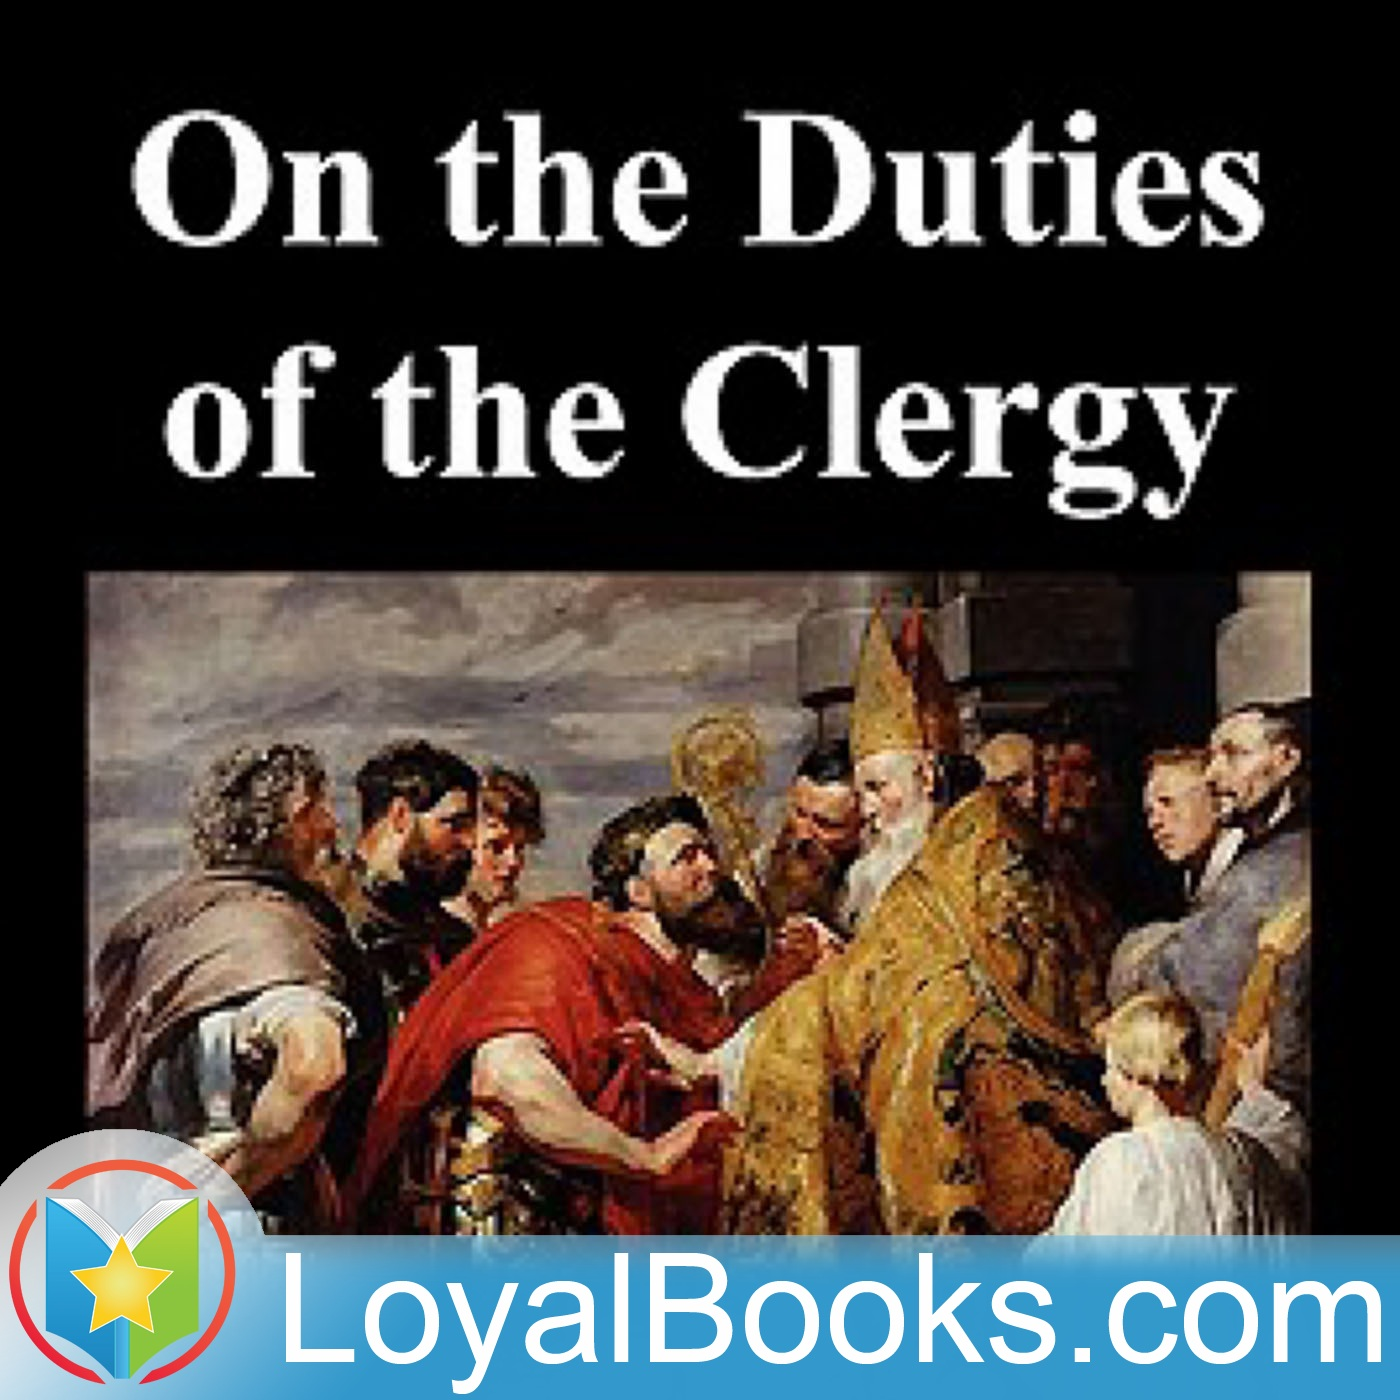 <![CDATA[On the Duties of the Clergy by Saint Ambrose]]>